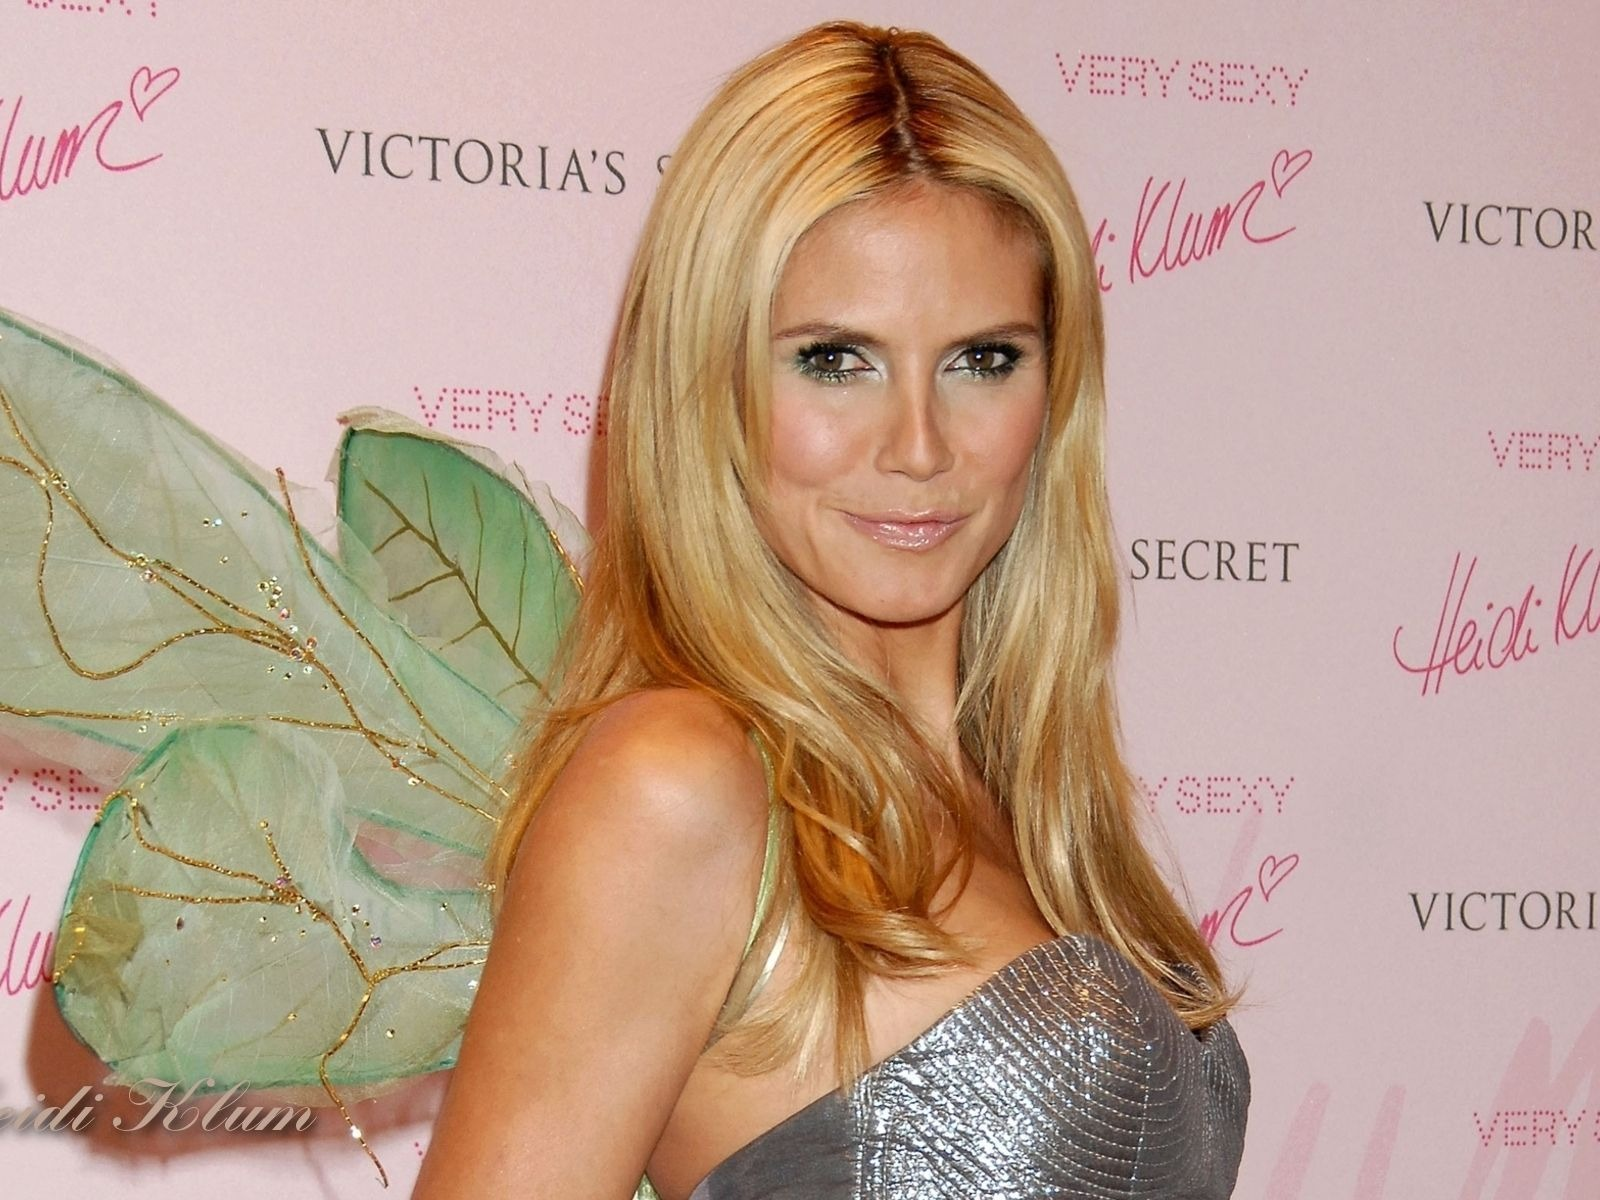 Heidi Klum #047 - 1600x1200 Wallpapers Pictures Photos Images